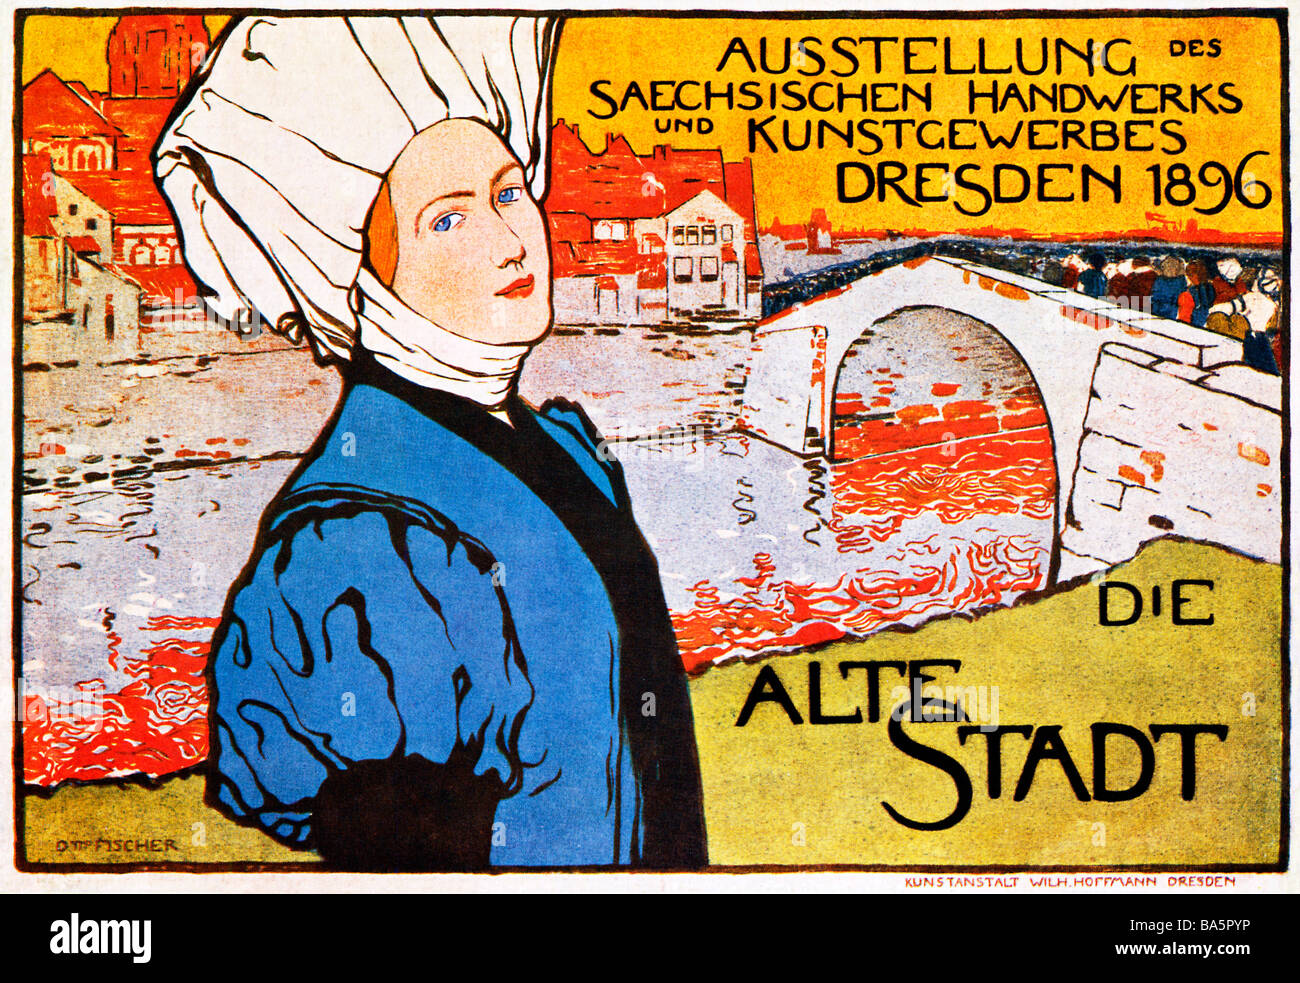 Alte Stadt Dresden 1896 poster for an exhibition of Saxon arts and crafts in the regional capital - Stock Image